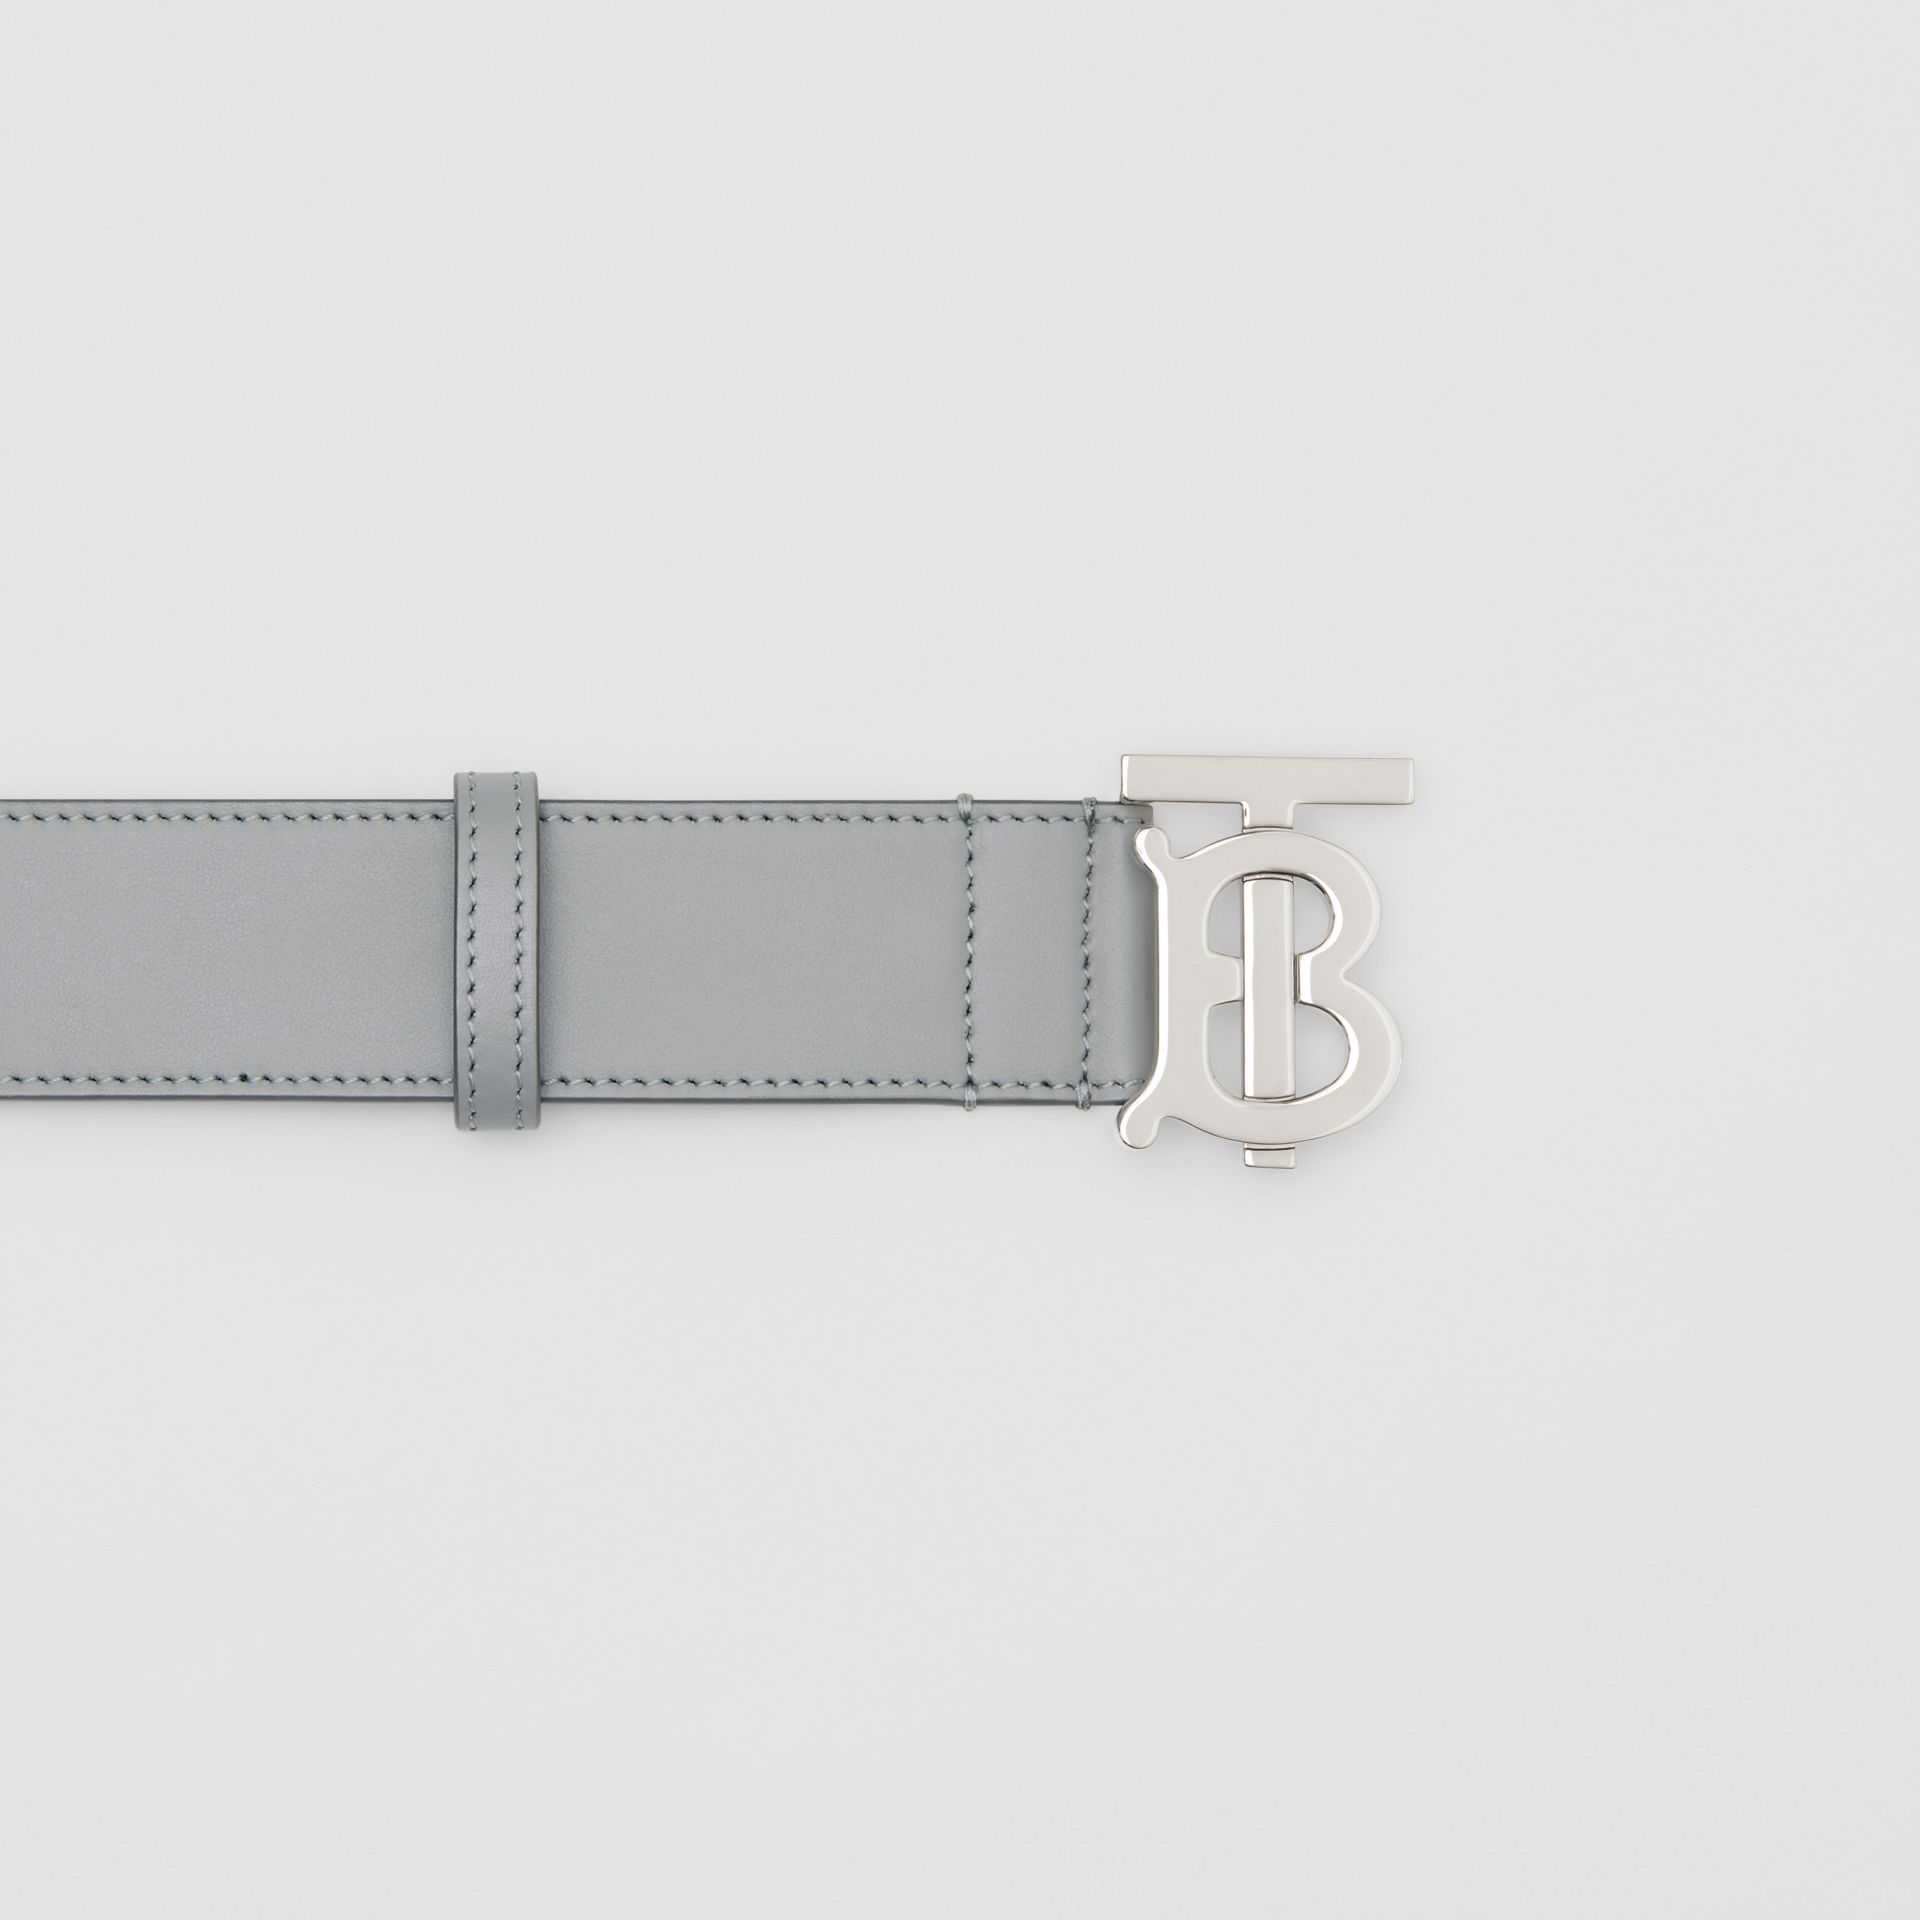 Monogram Motif Leather Belt in Cloud Grey - Men | Burberry - gallery image 1